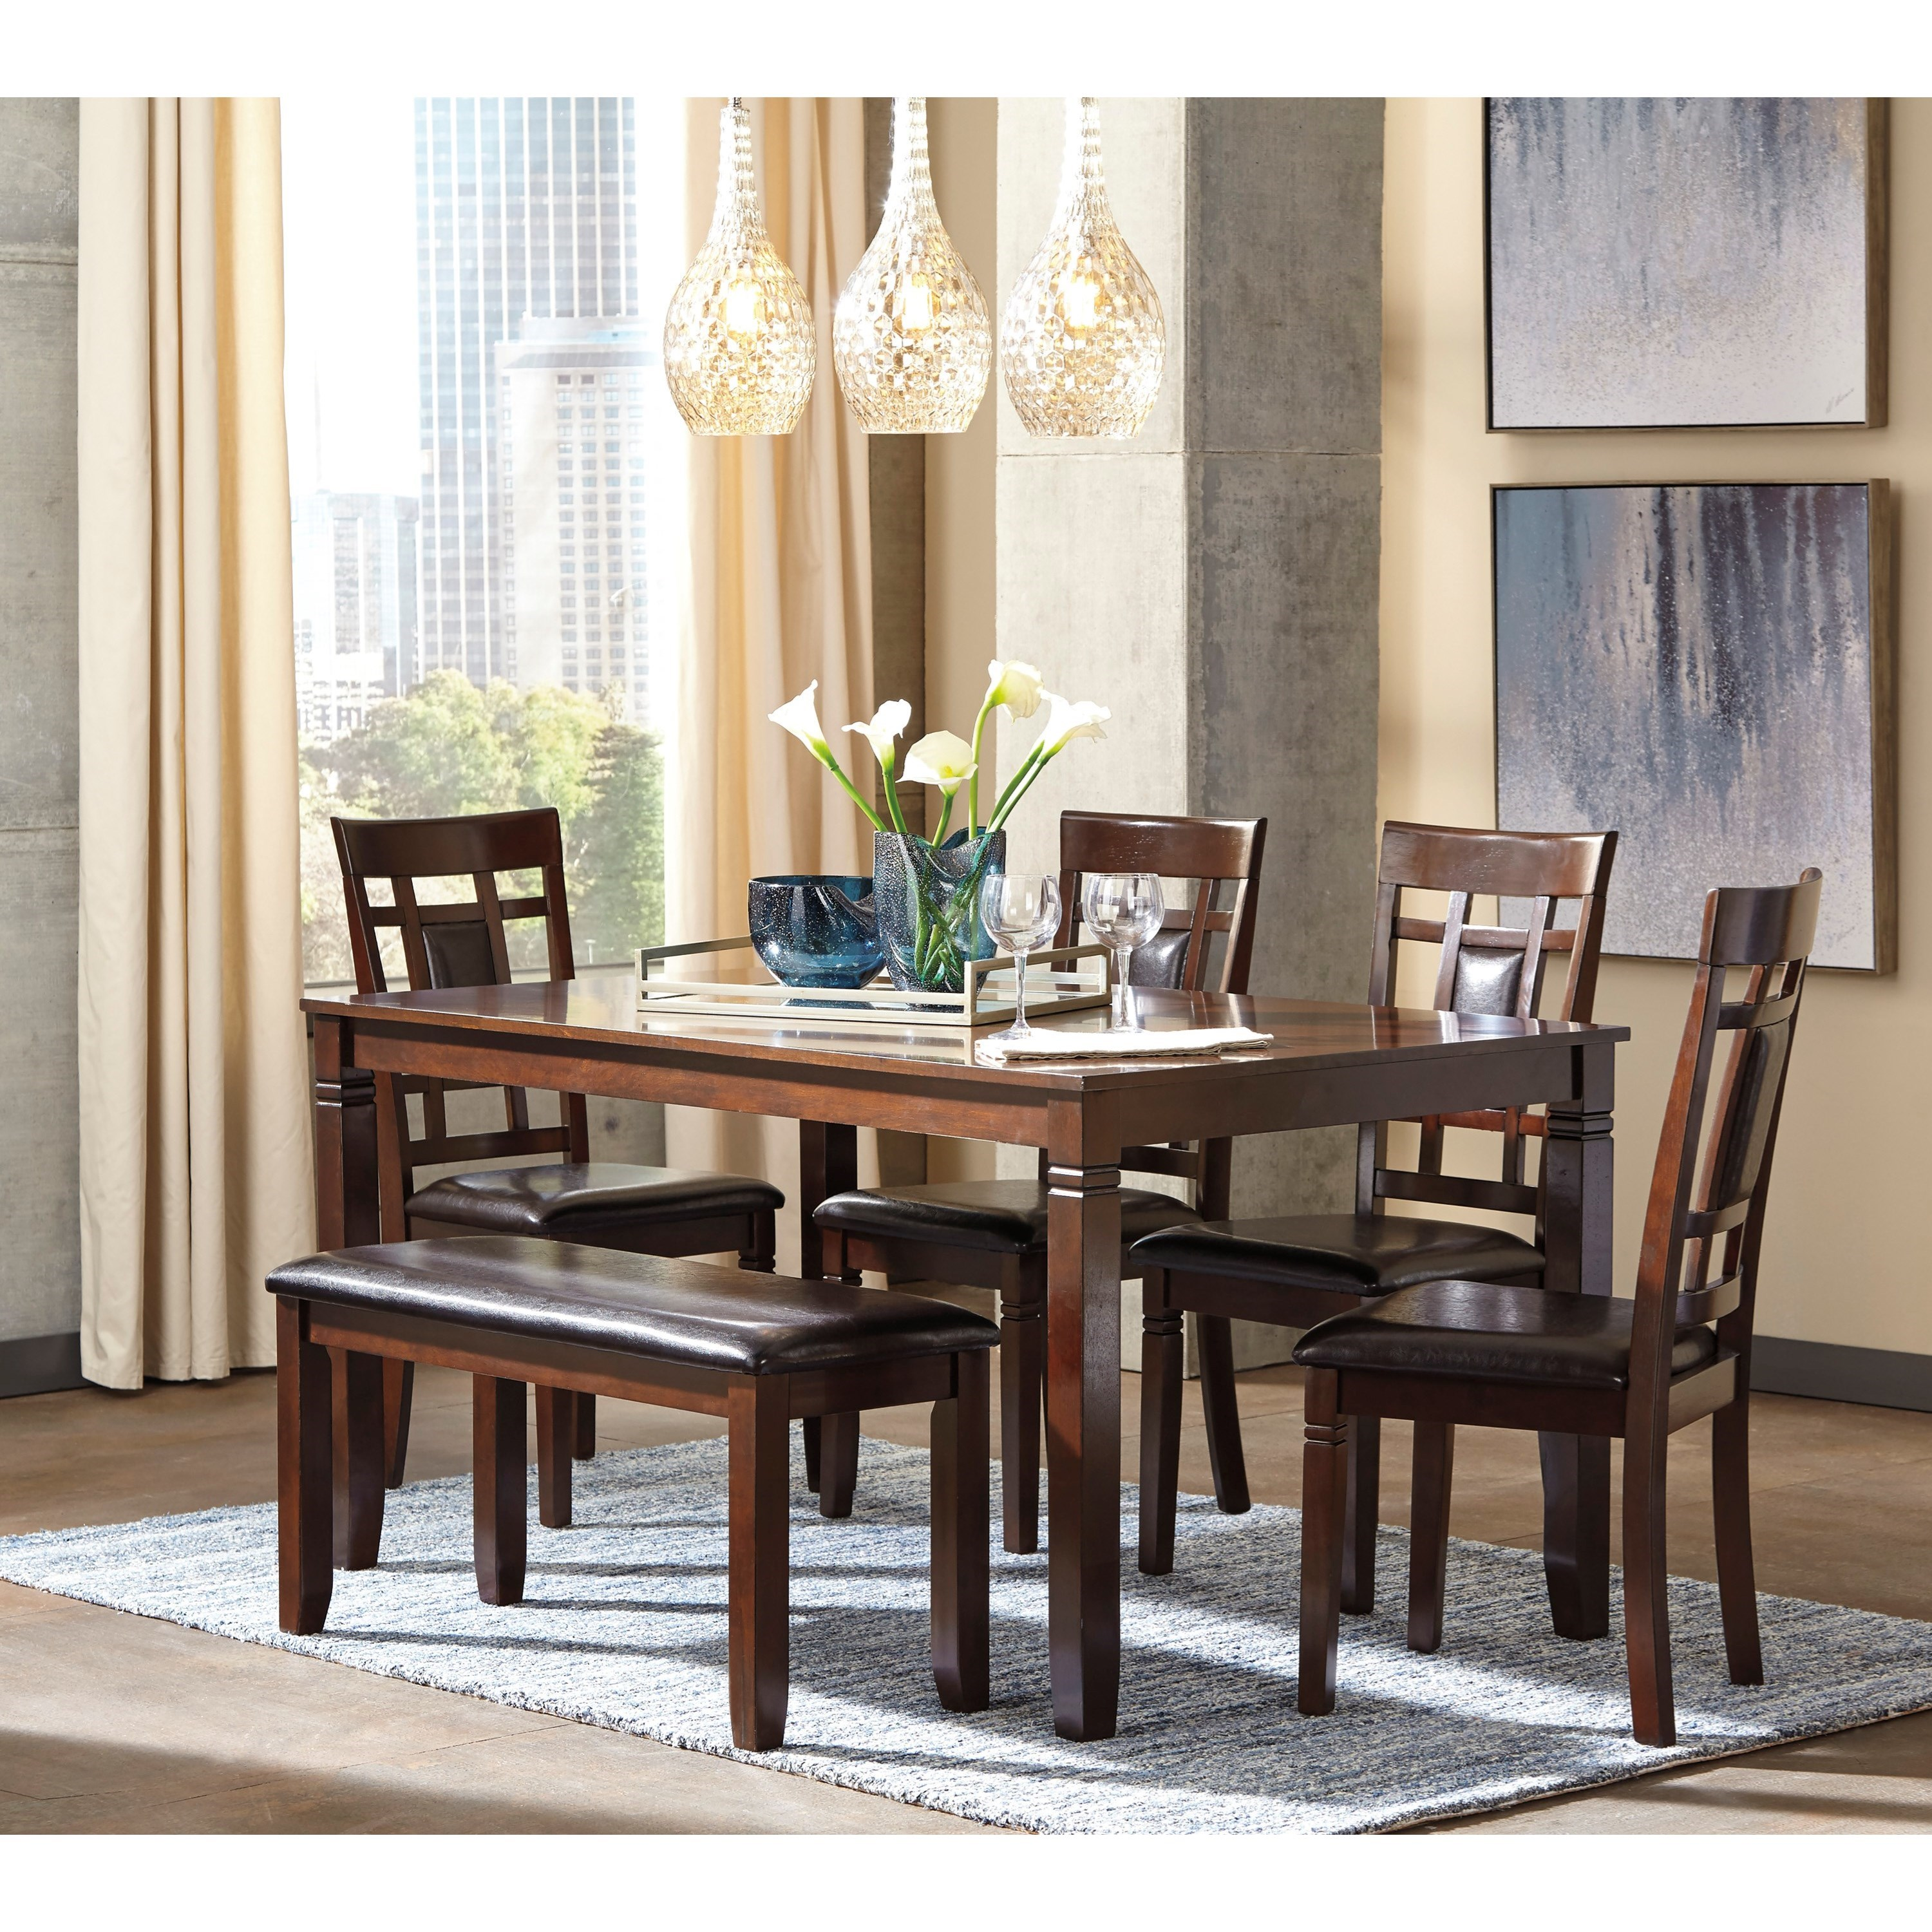 Bench Dining Room Table: Contemporary 6-Piece Dining Room Table Set With Bench By